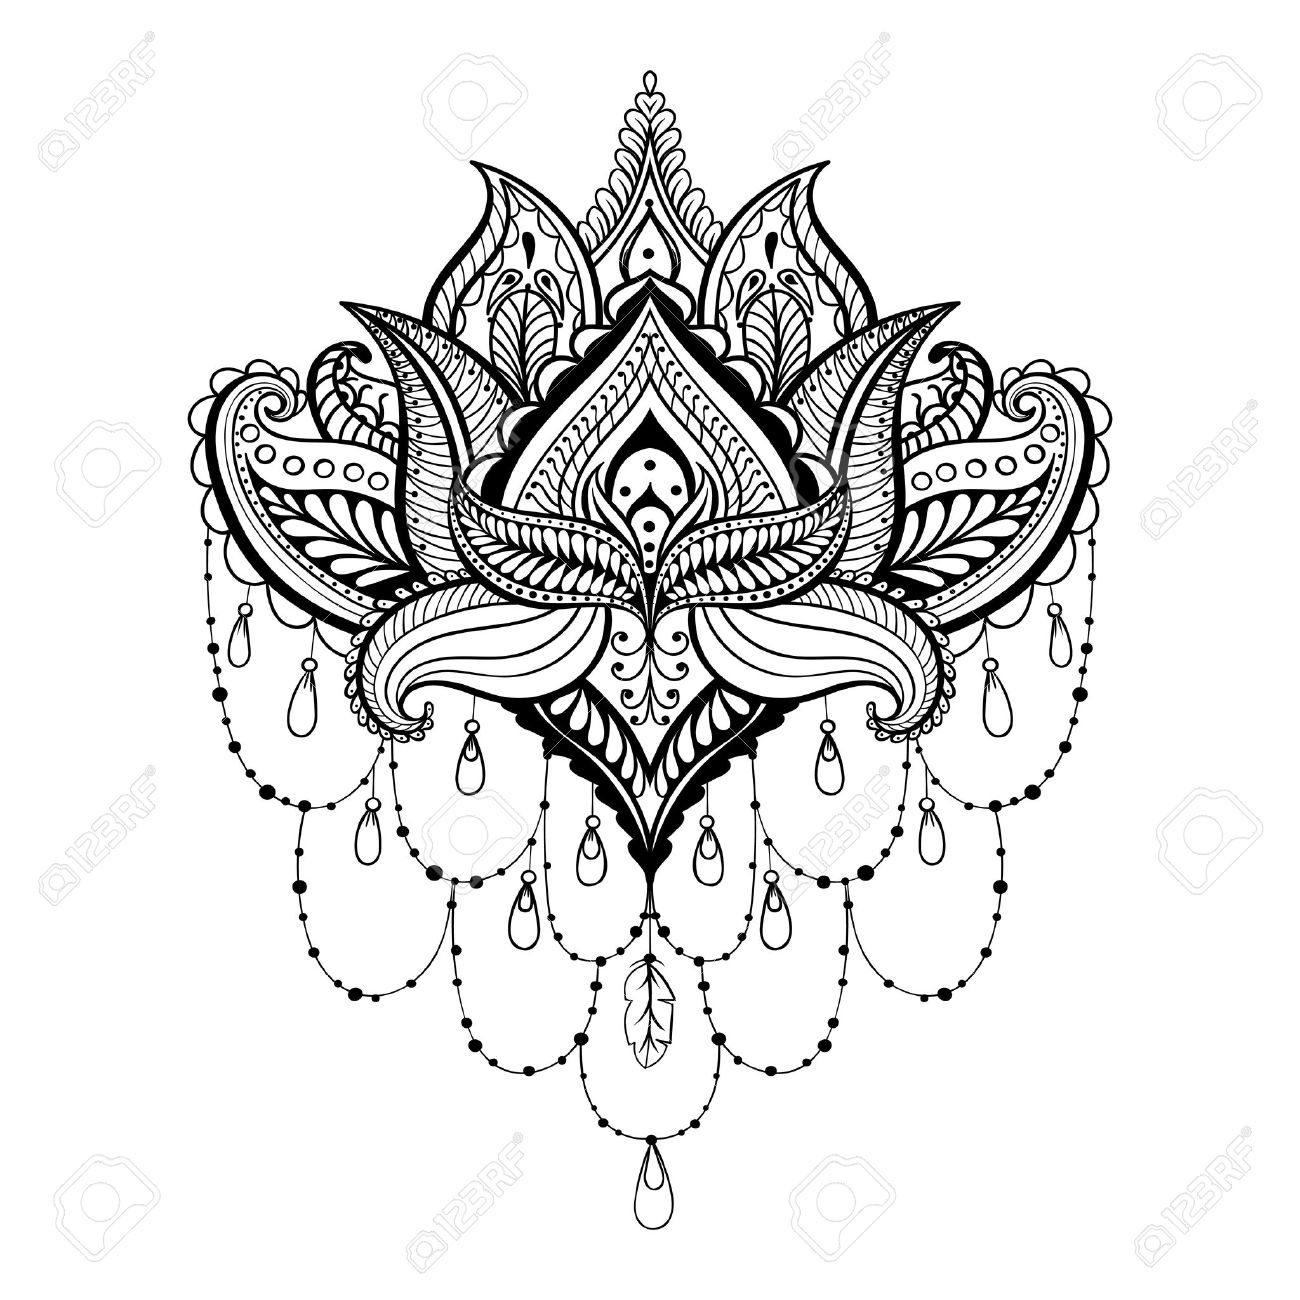 Vector Ornamental Lotus, Ethnic Zentangled Henna Tattoo, Patterned on henna design black and white, henna design patterns, henna animal designs, henna design ideas, henna design words, henna design shapes, henna design sheets, henna design wallpaper, henna tattoo designs, henna coloring page world, henna design cartoon, henna design drawing, henna design cards, henna stencil designs, henna design masks, henna design printouts, henna design printables, henna design sketches, henna design art, henna heart designs,